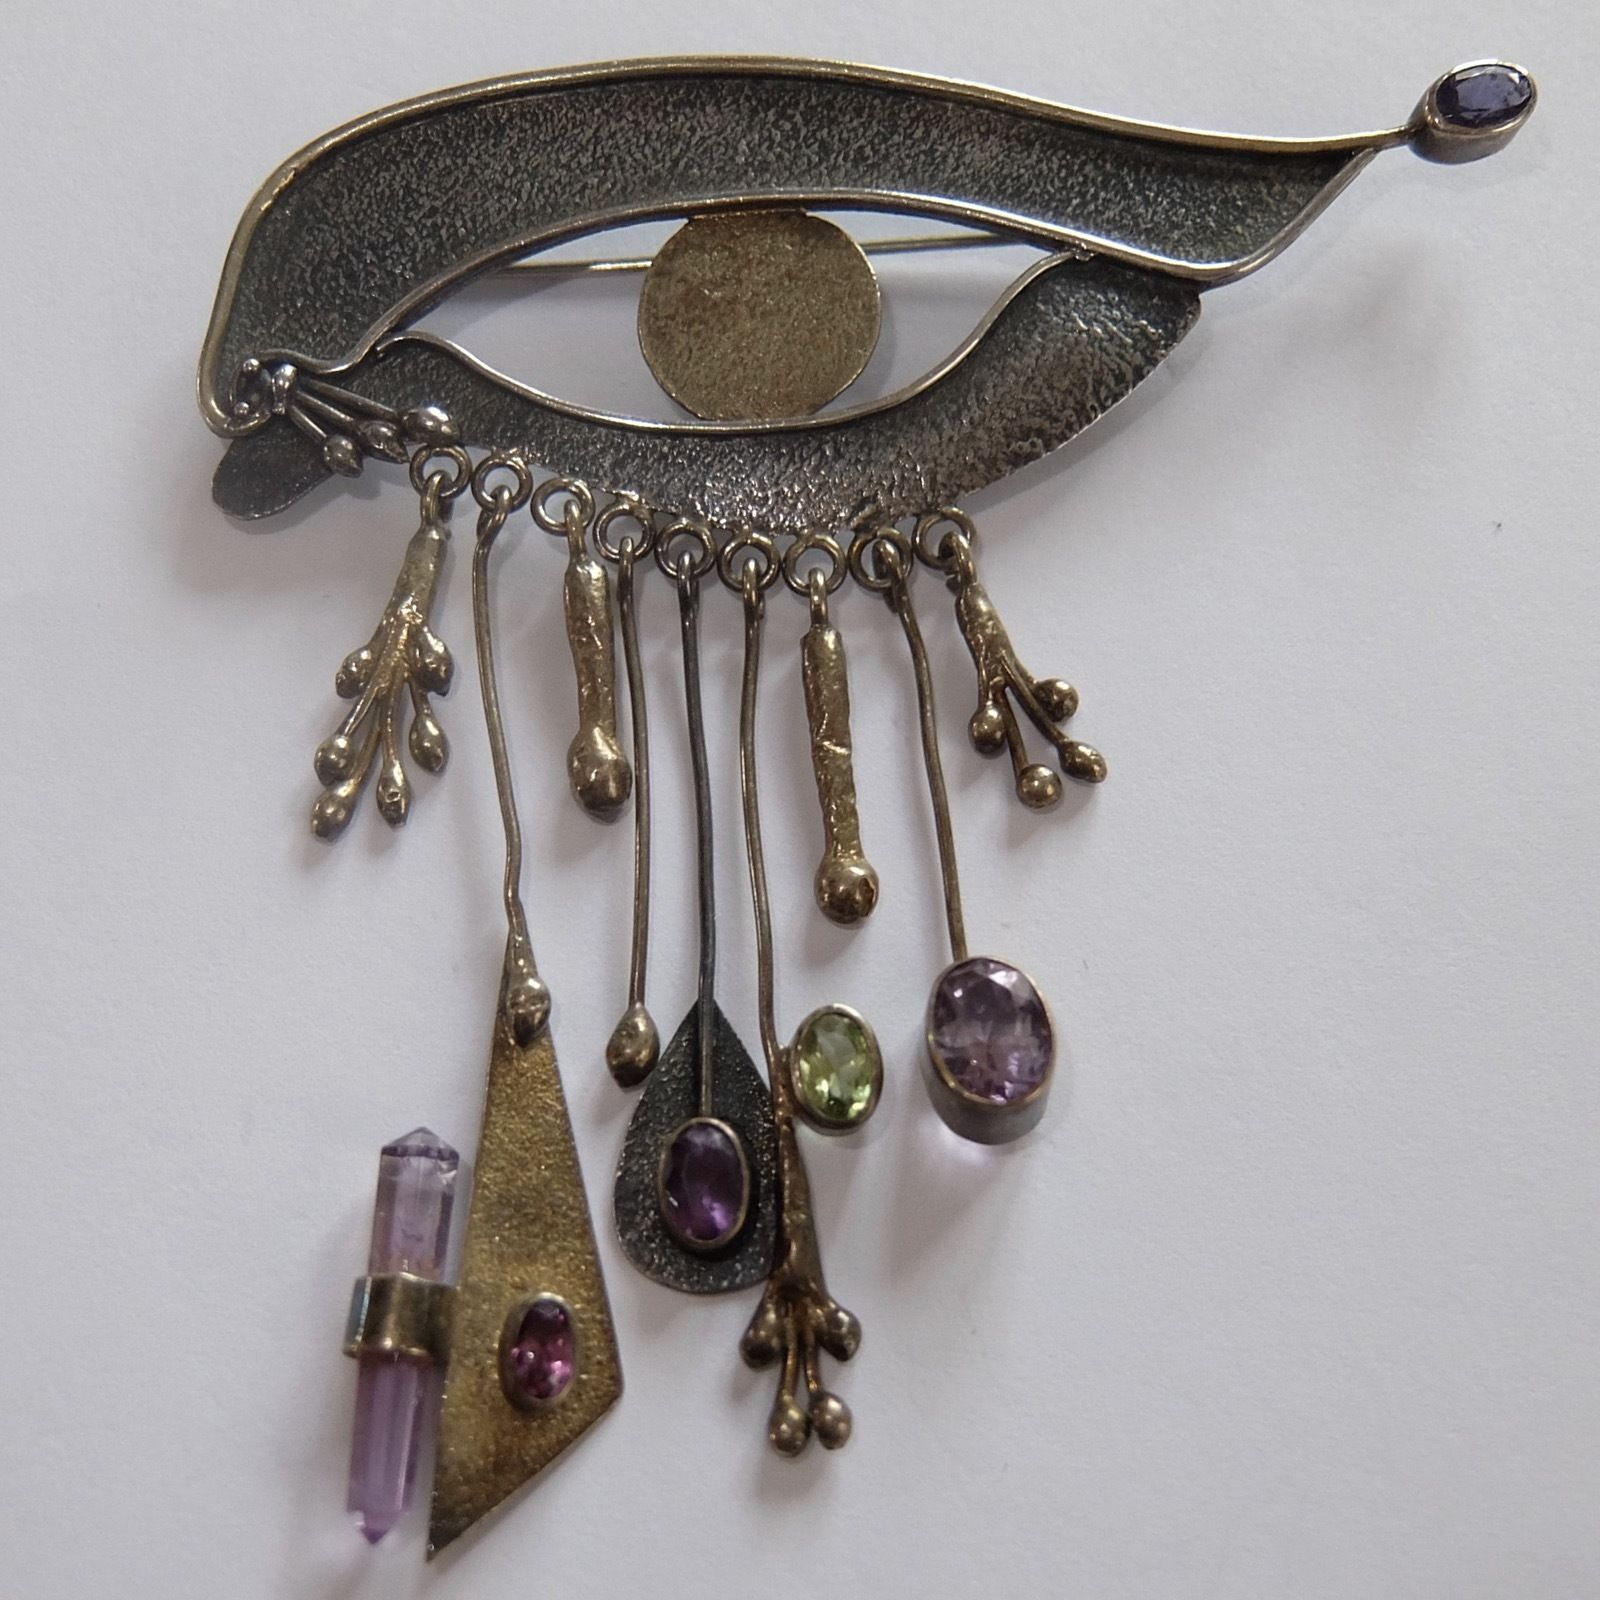 made eye silver ebay vintage artist sterling amethyst brooch surrealist pin studio